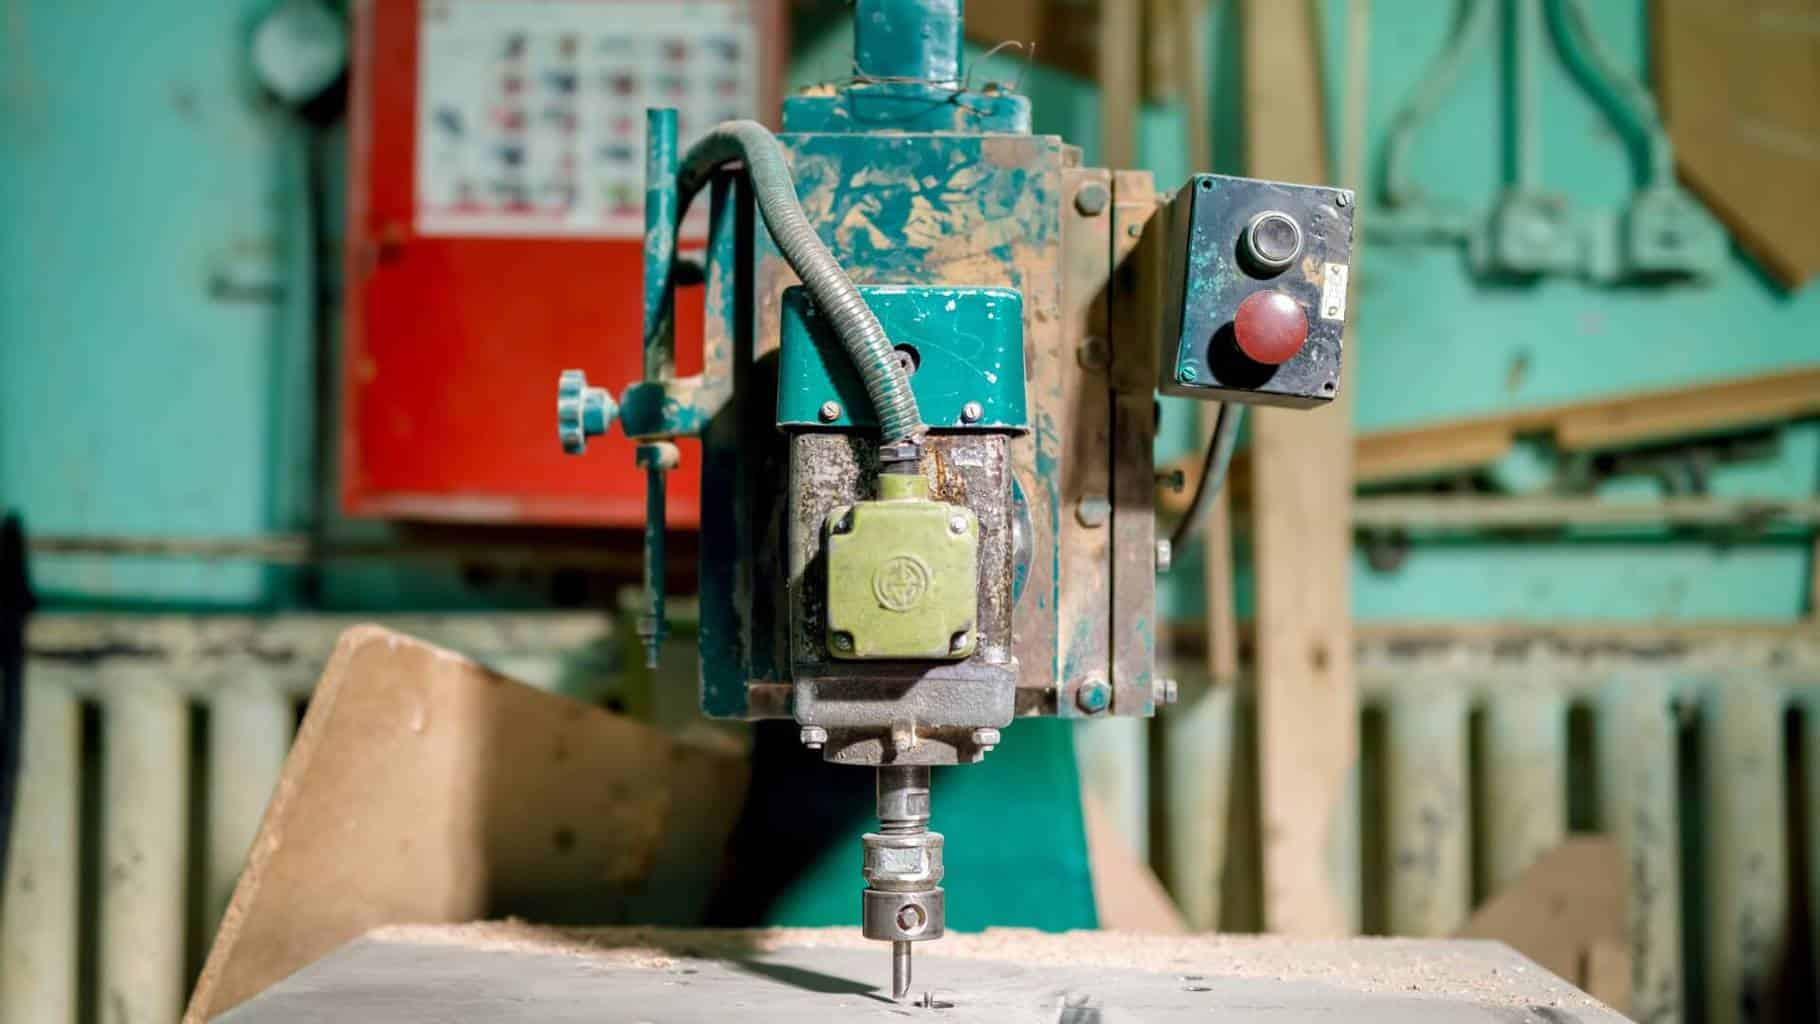 What's the Difference Between a Wood Lathe vs. a Metal Lathe?